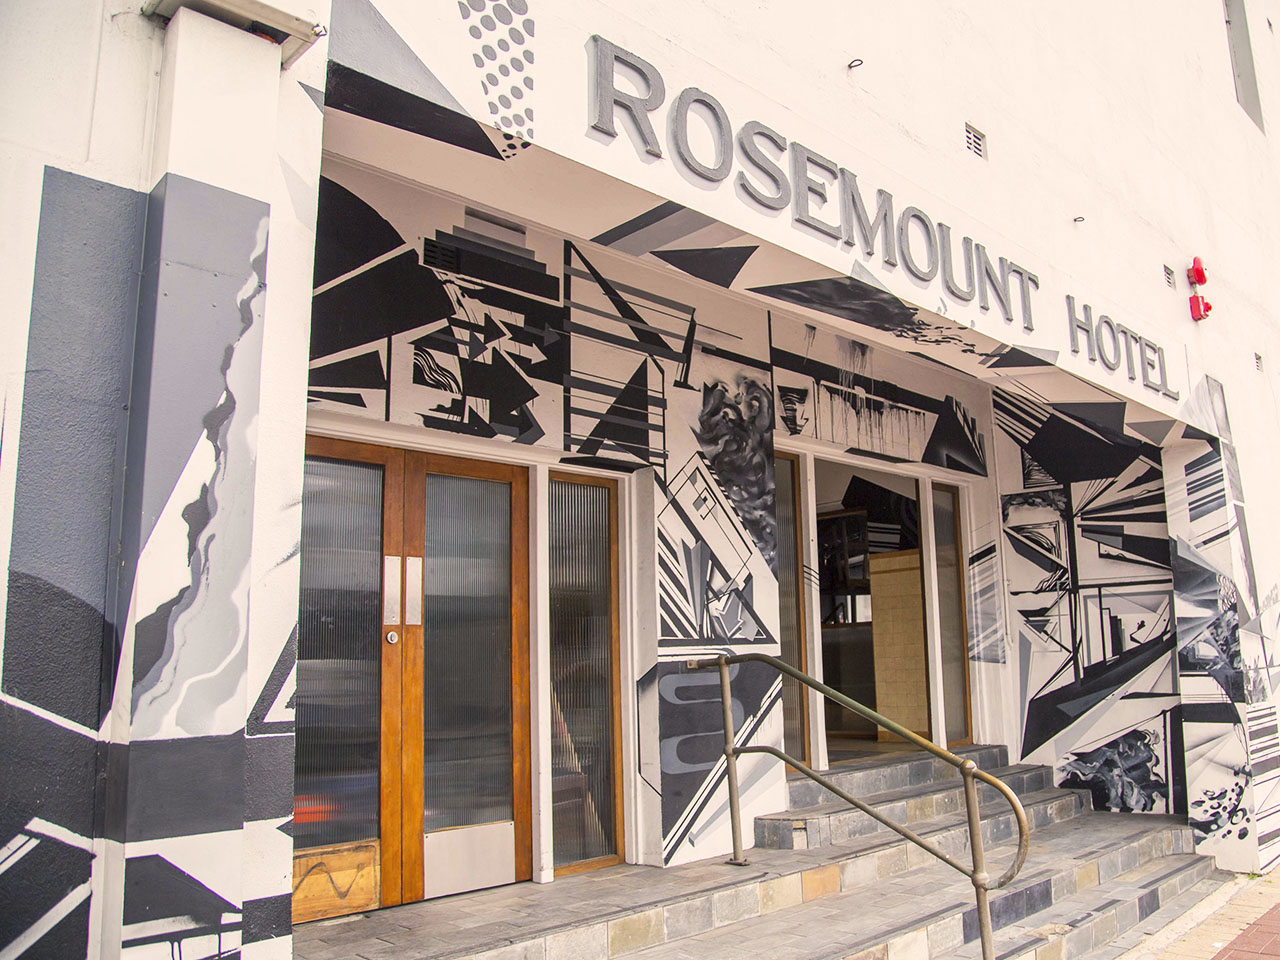 Front entrance to The Rosemount Hotel with steps leading up to wooden doors beneath signage